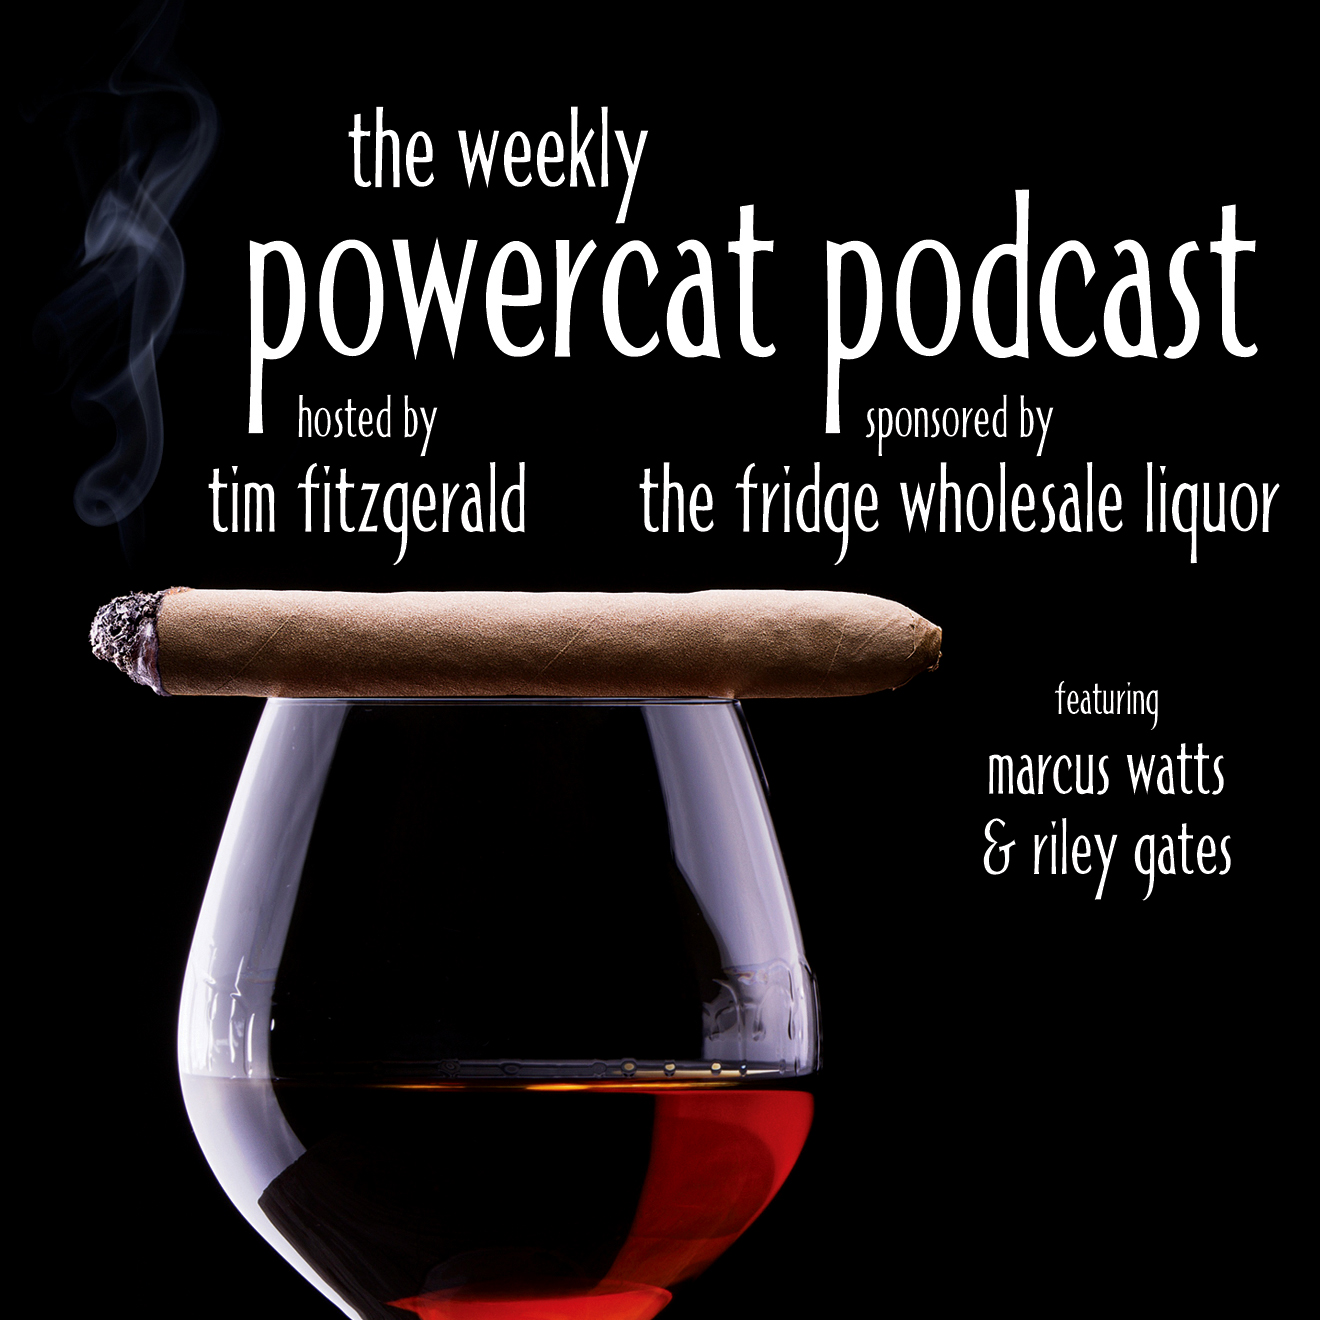 The Powercat Podcast 11.09.16